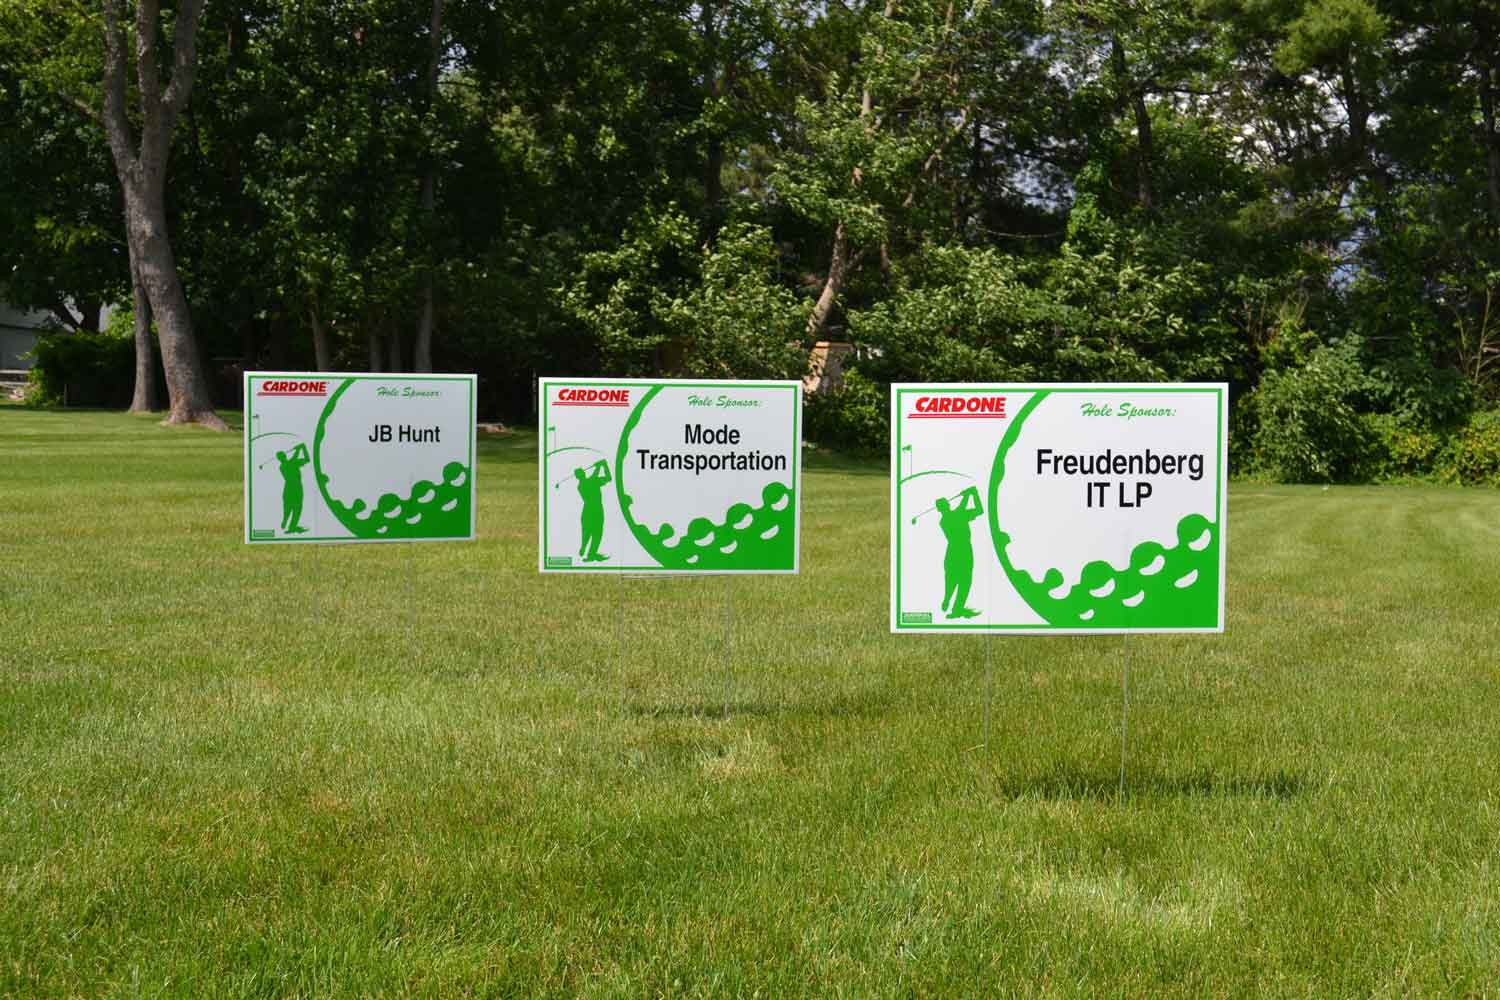 Golf Outing Sponsorship Lawn Signs